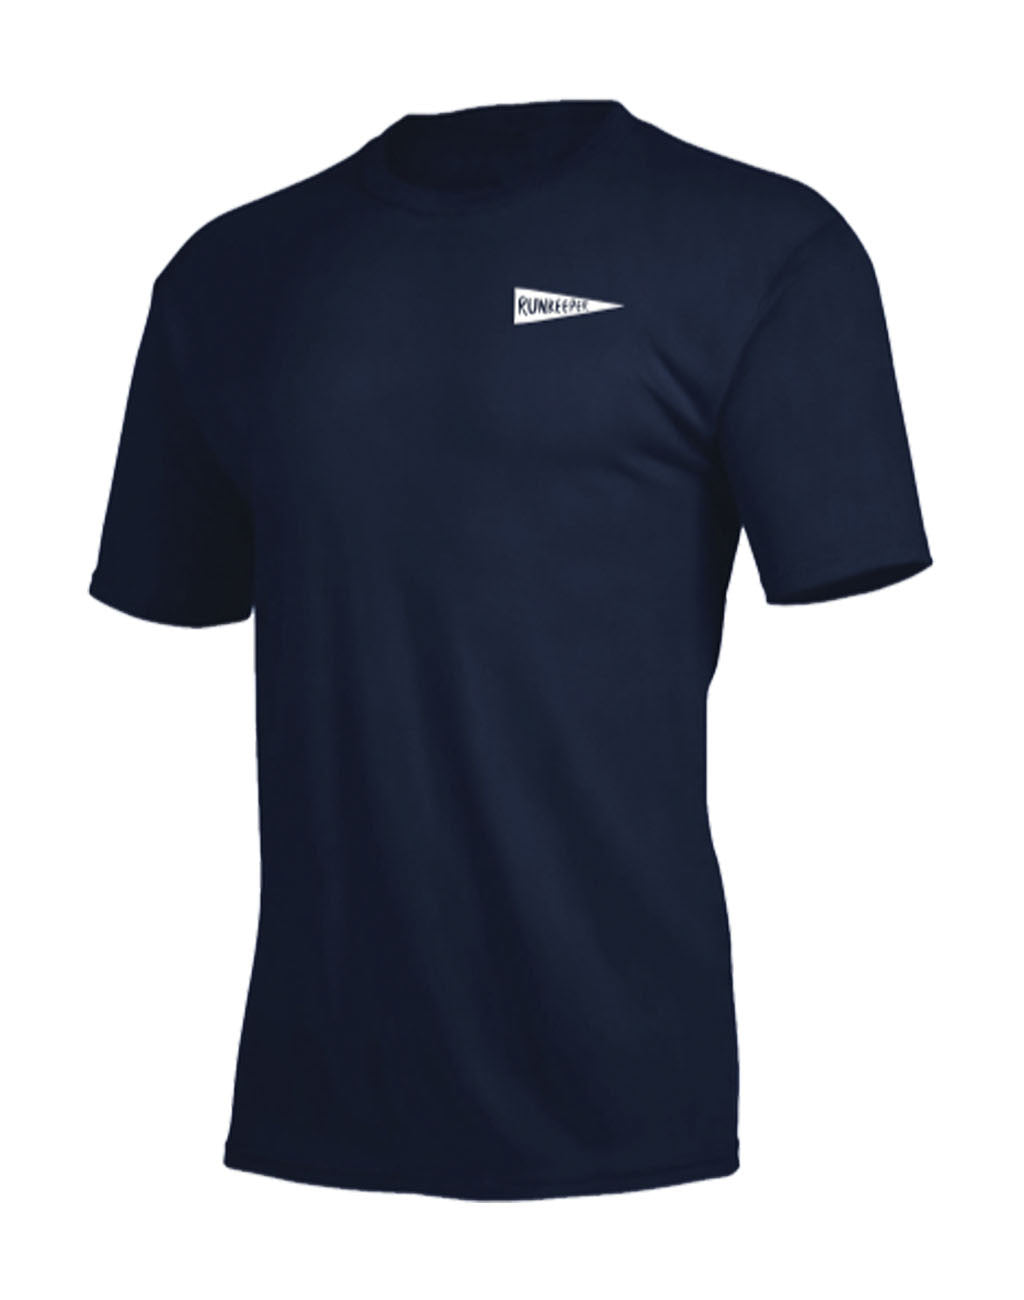 Runkeeper Men's - 'Rise & Run' Short Sleeve TeeNavy_master_image